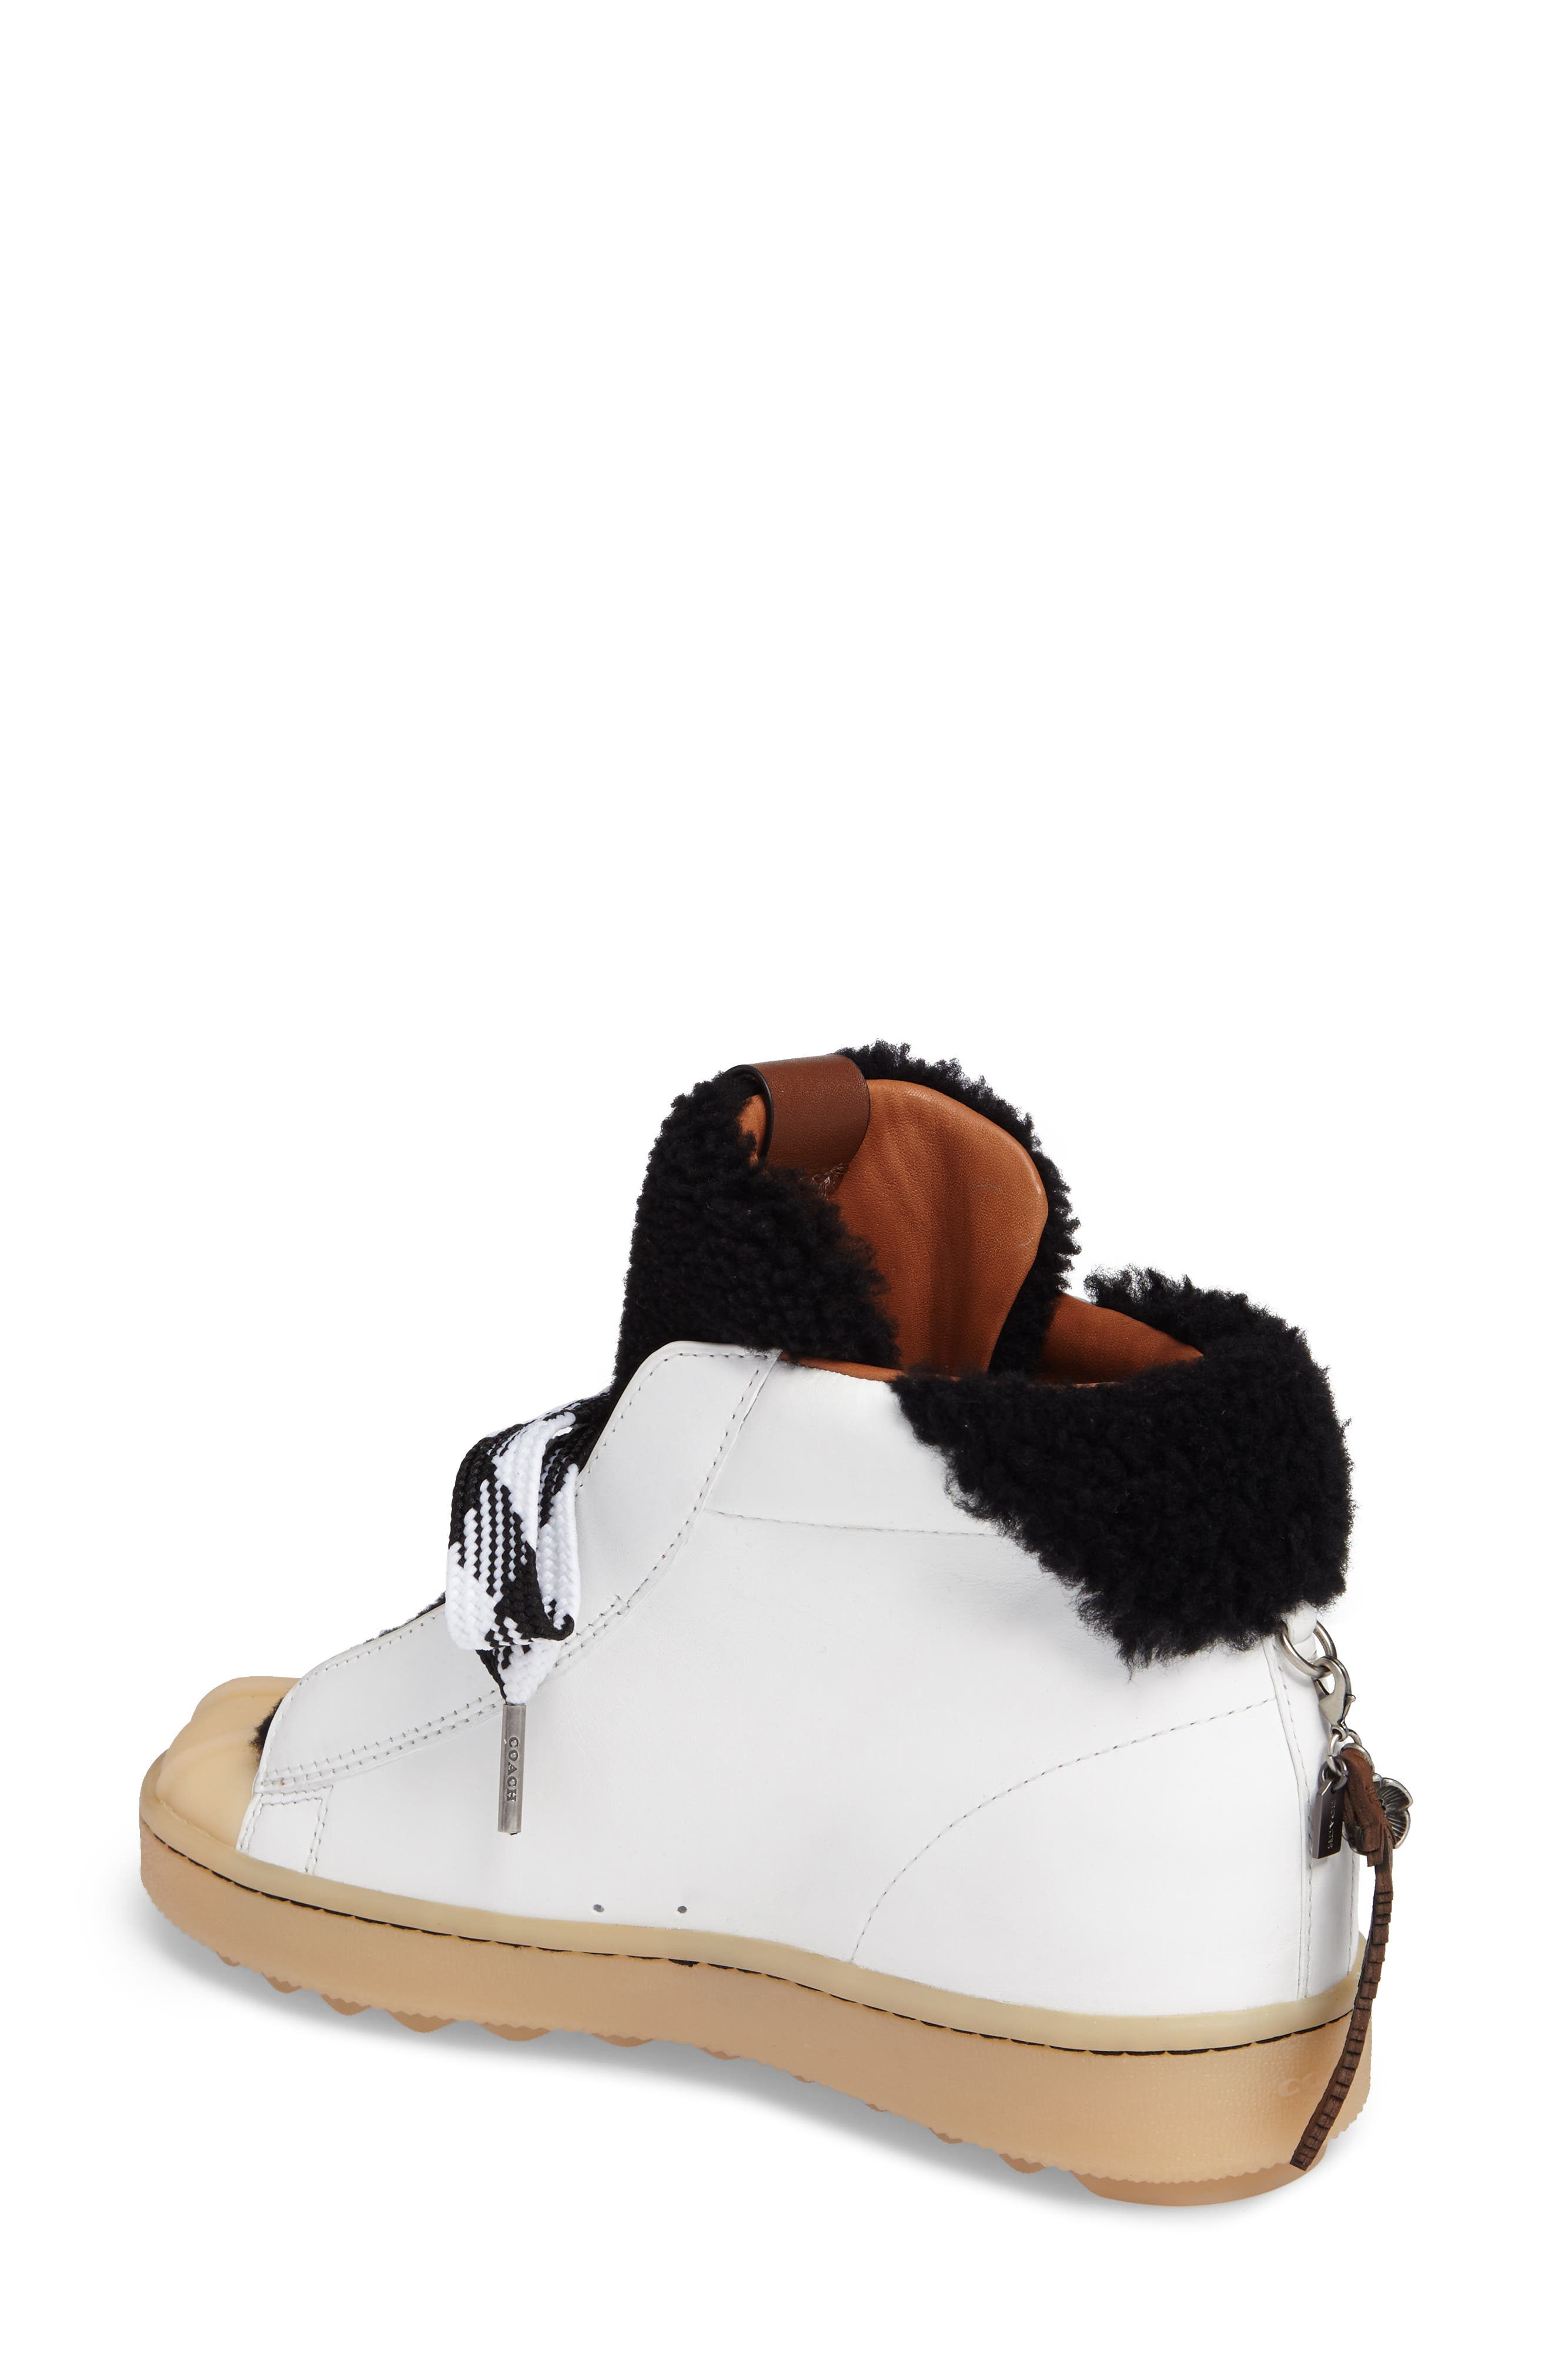 Genuine Shearling High Top Sneaker,                             Alternate thumbnail 2, color,                             Black/ White Suede